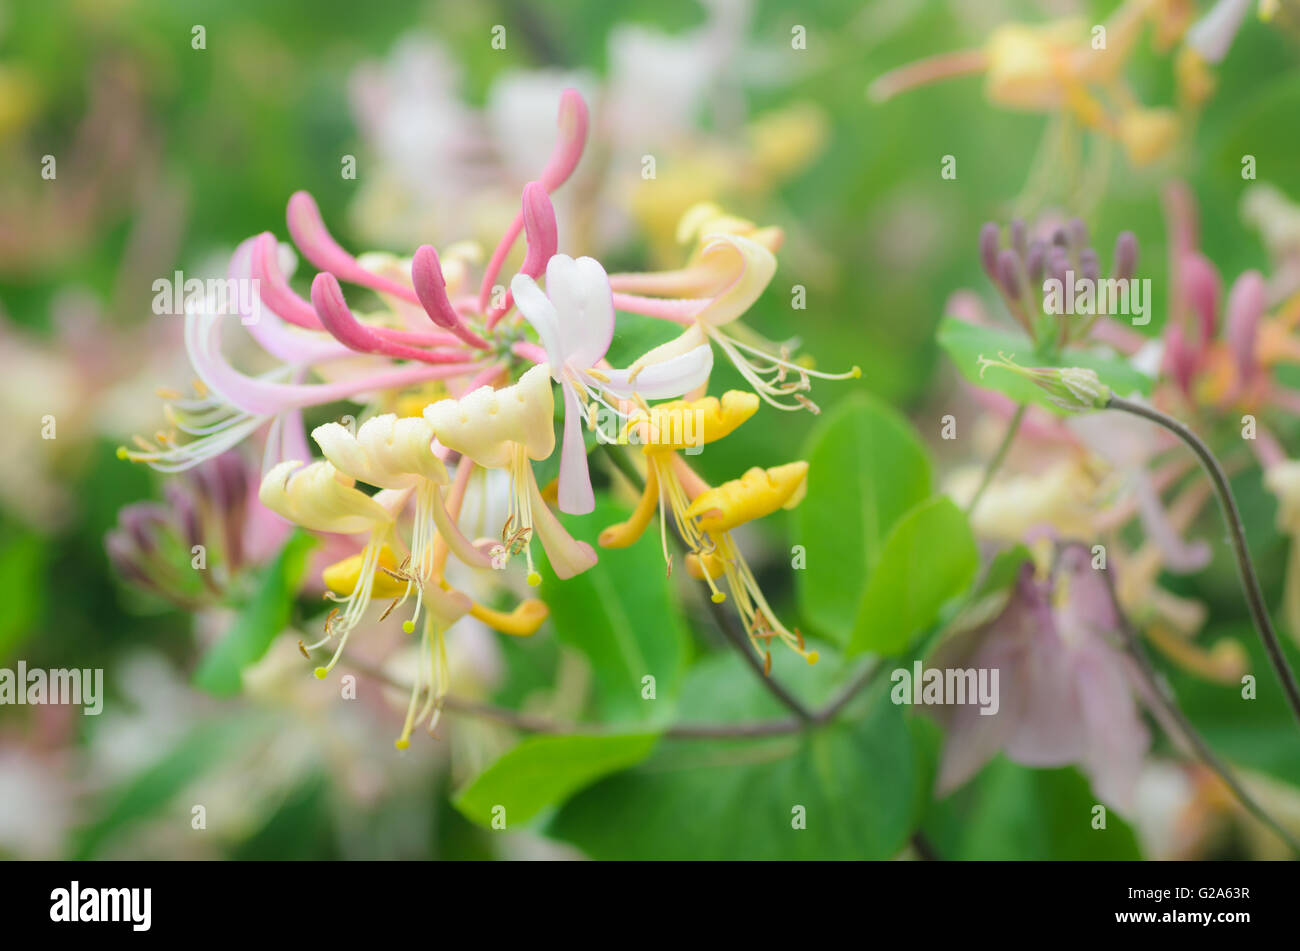 Pink Honeysuckle Flower Bloom Stock Photos Pink Honeysuckle Flower